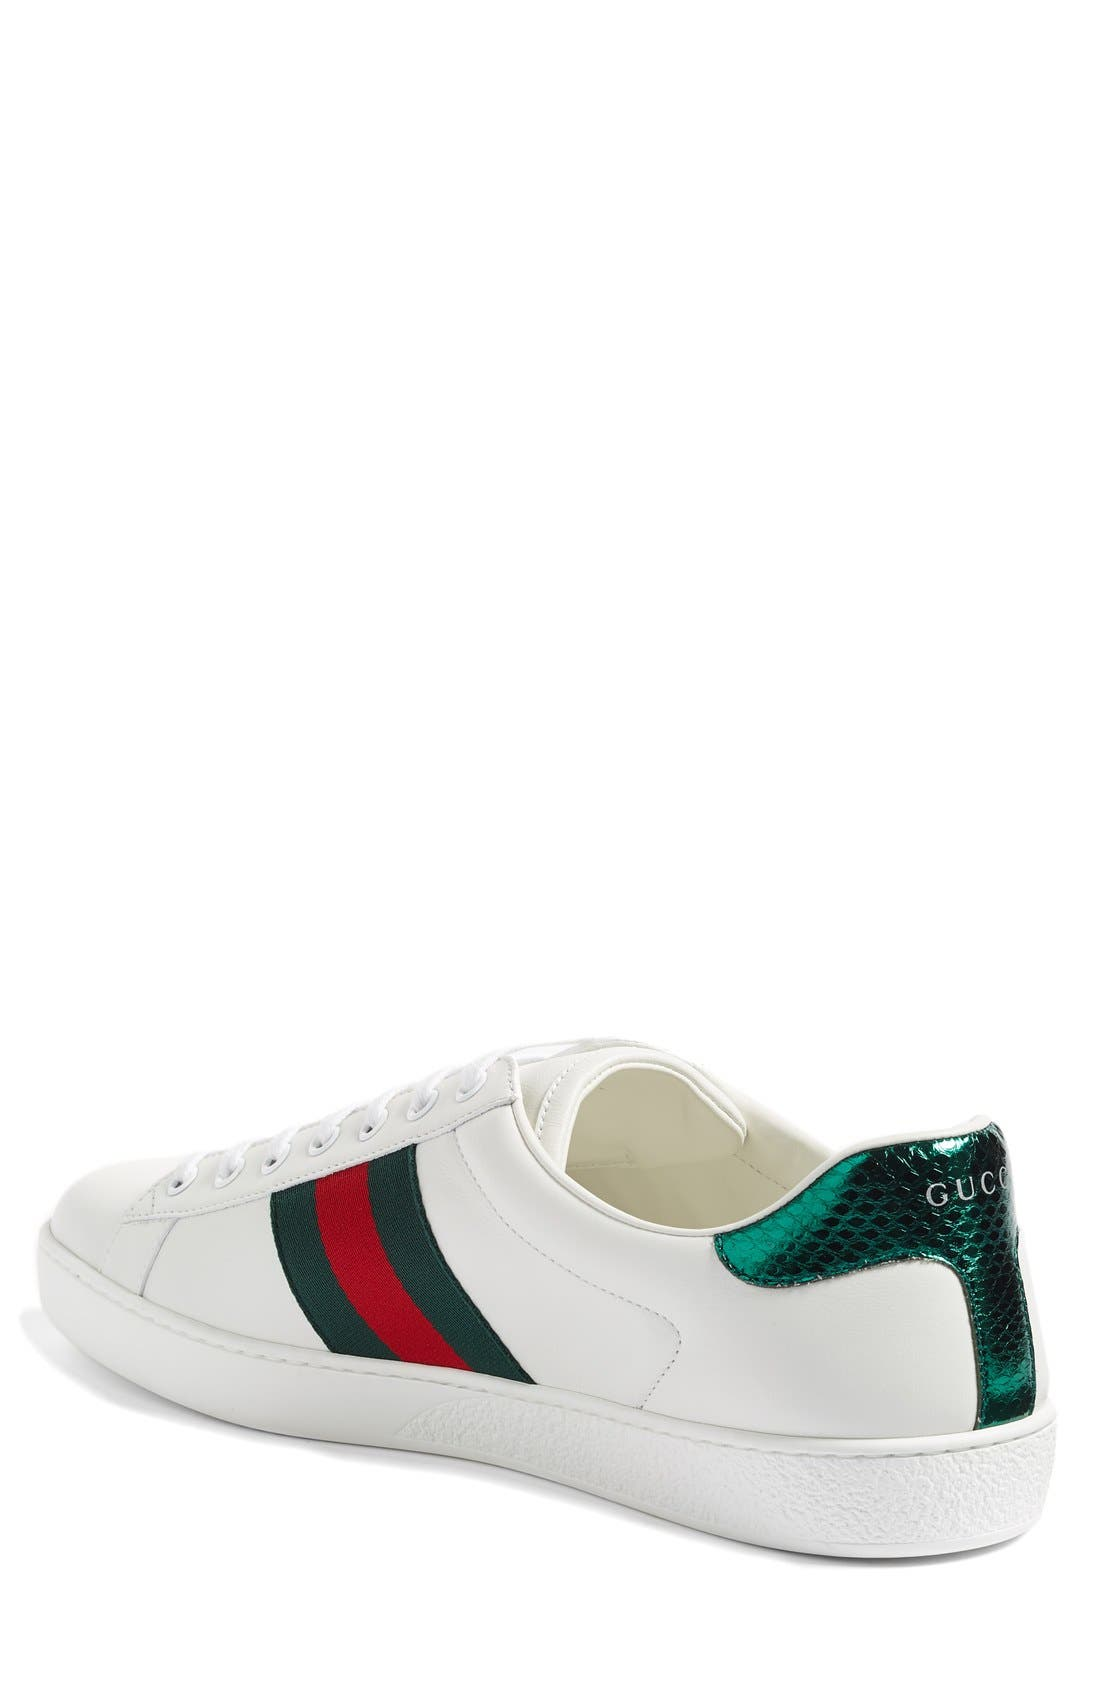 Alternate Image 2  - Gucci 'New Ace' Sneaker (Men)